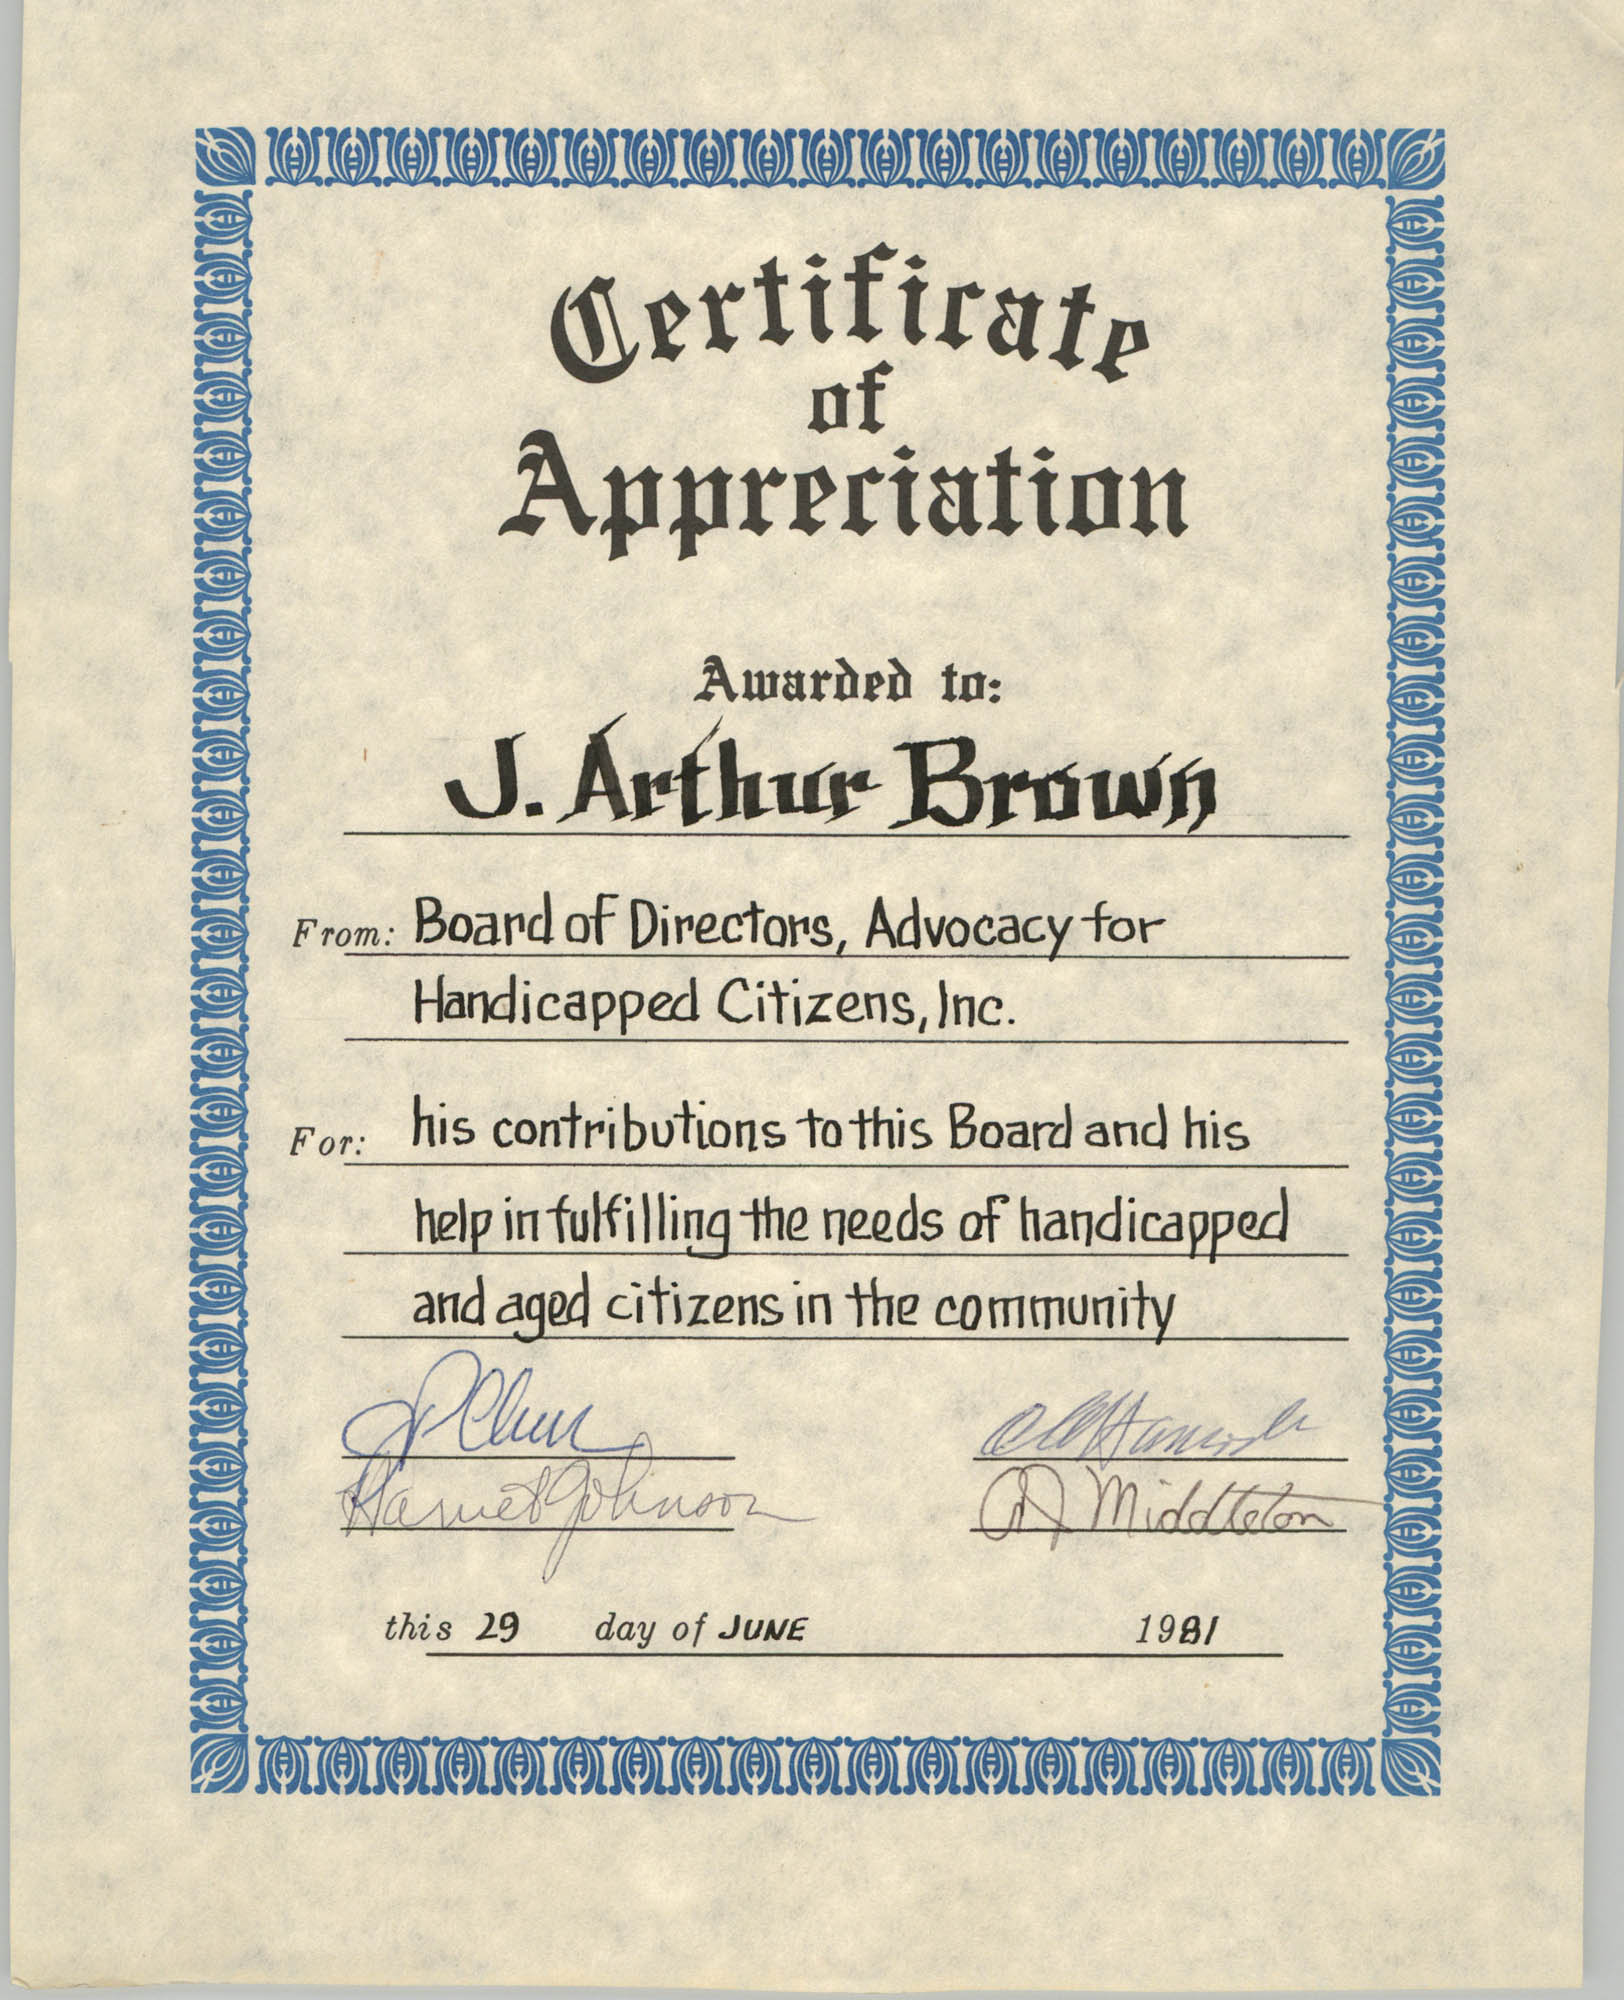 Advocacy for Handicapped Citizens Certificate of Appreciation Awarded to J. Arthur Brown